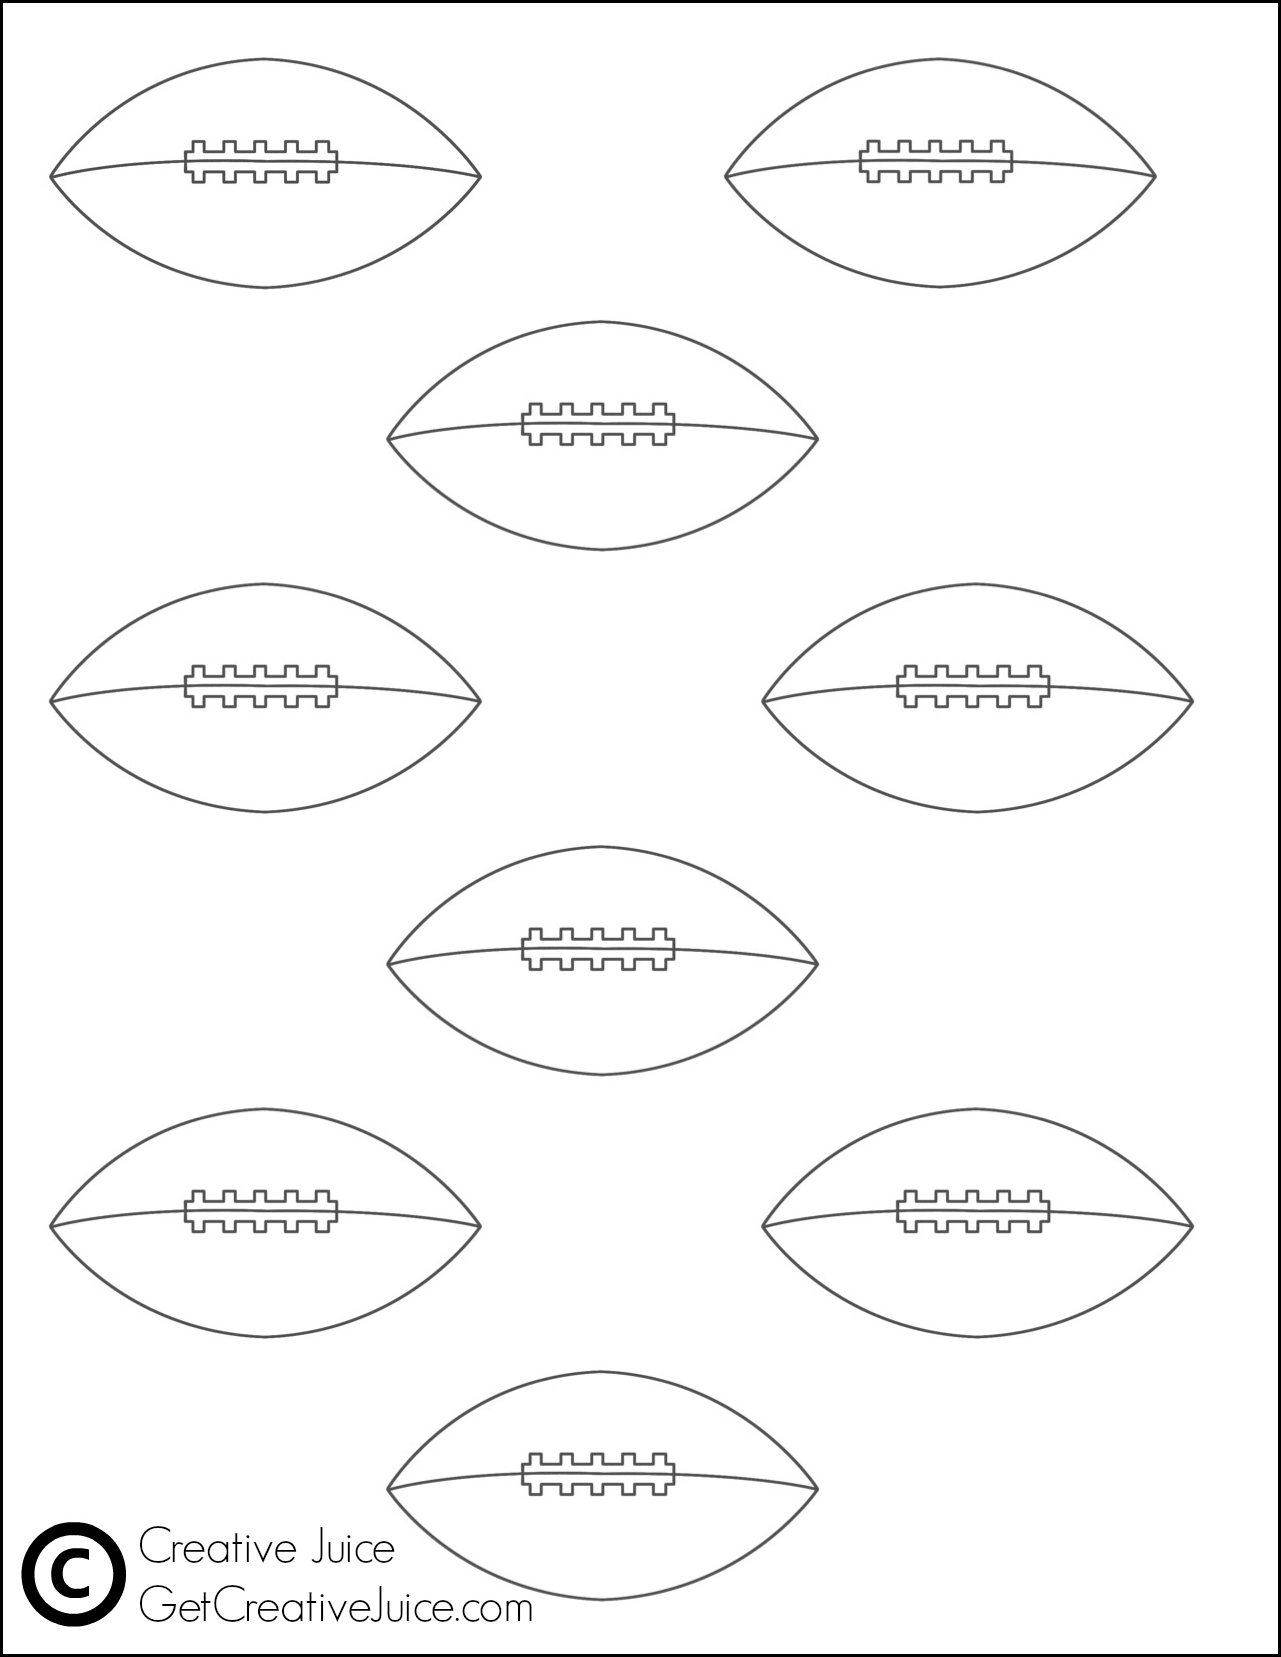 This is a graphic of Revered Macaron Printable Template